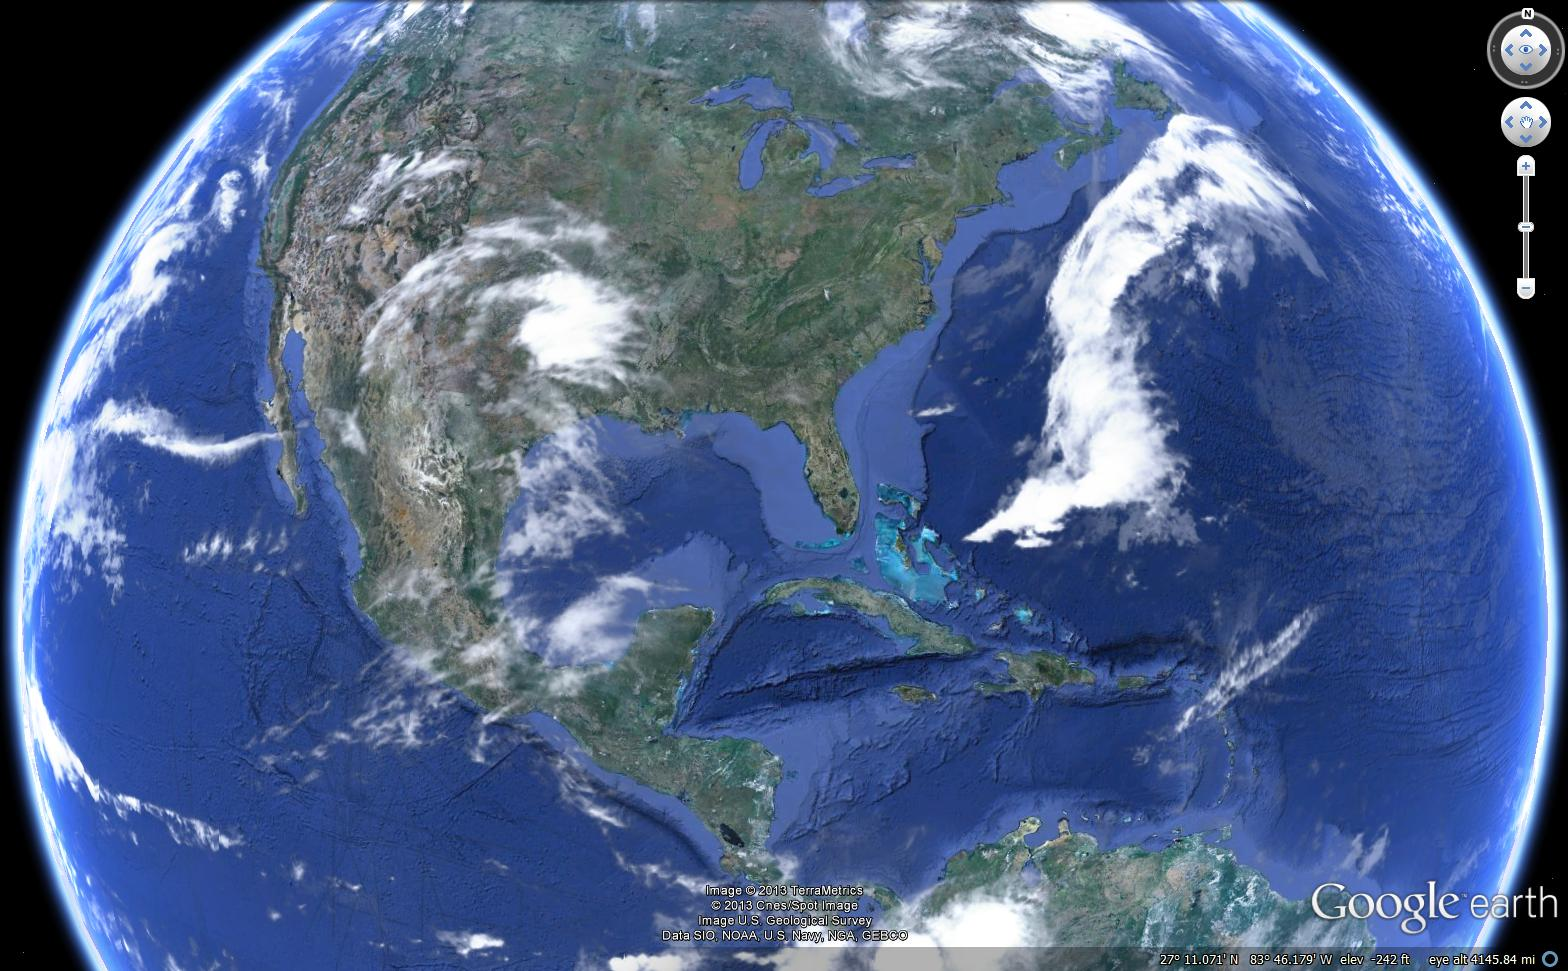 About Google Earth Imagery Google Earth Blog - World satellite map live online